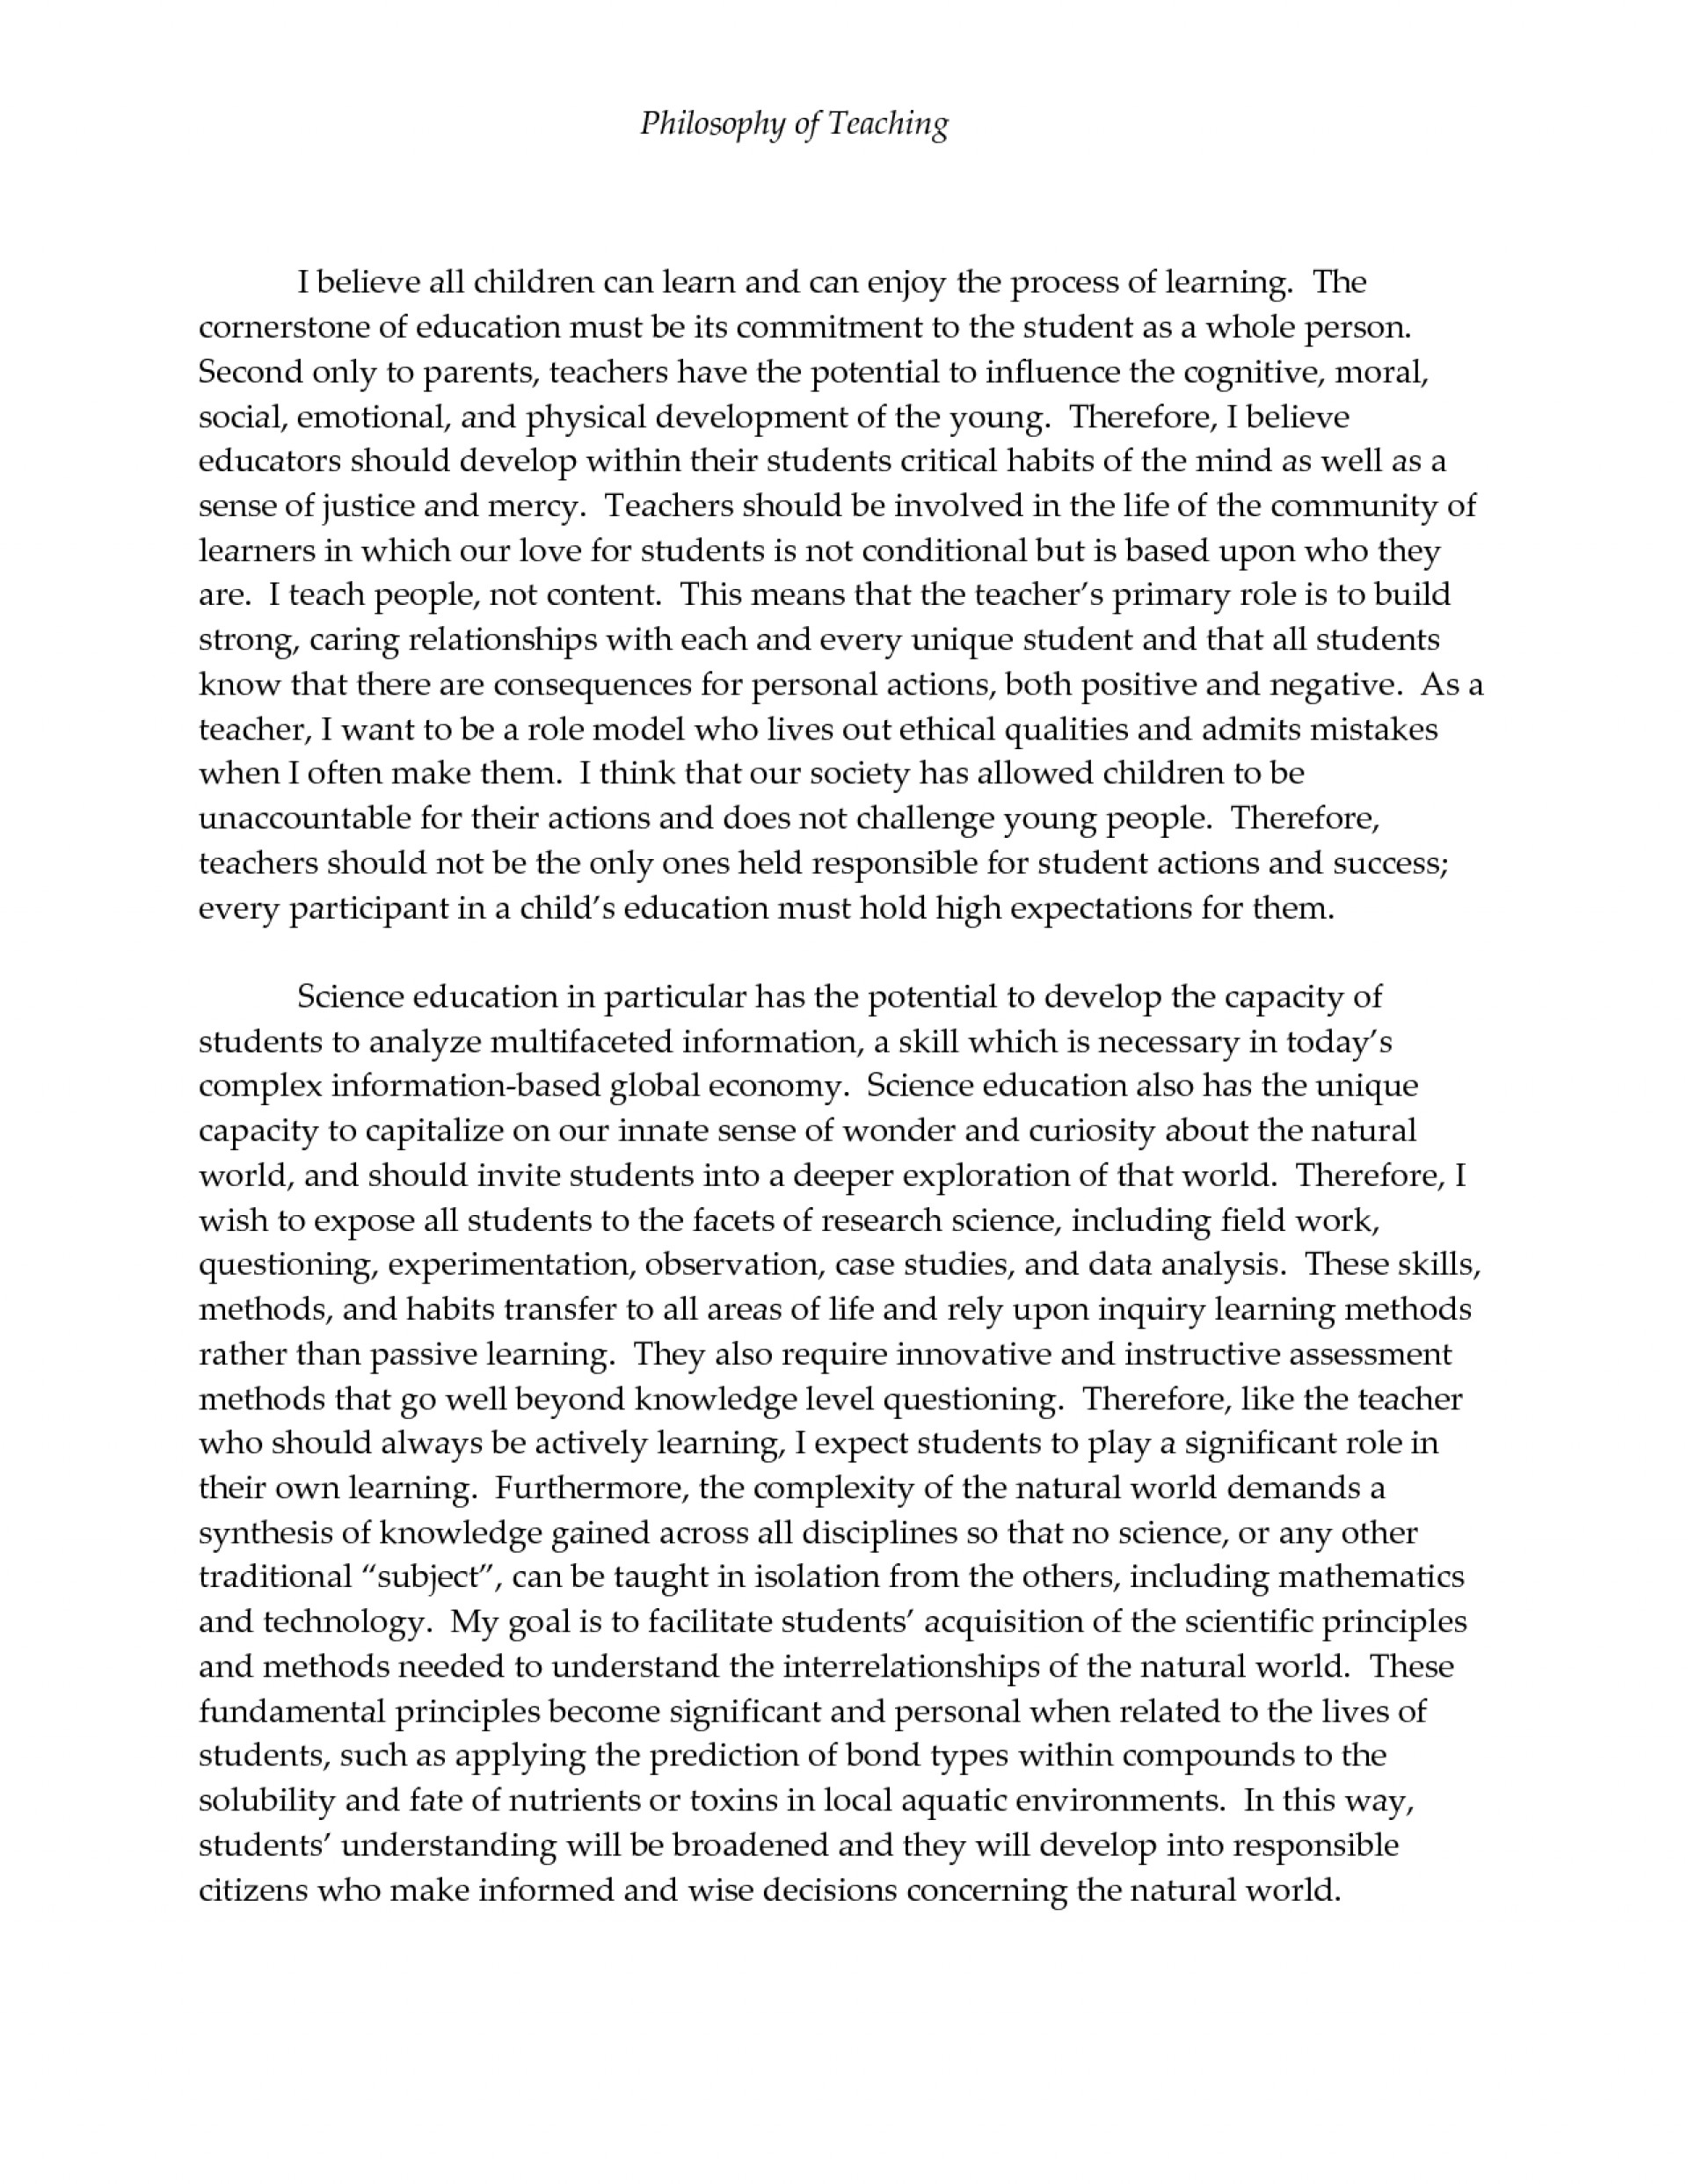 003 Philosophy Of Teaching Essay Dreaded My Personal And Learning Education Pdf 1920